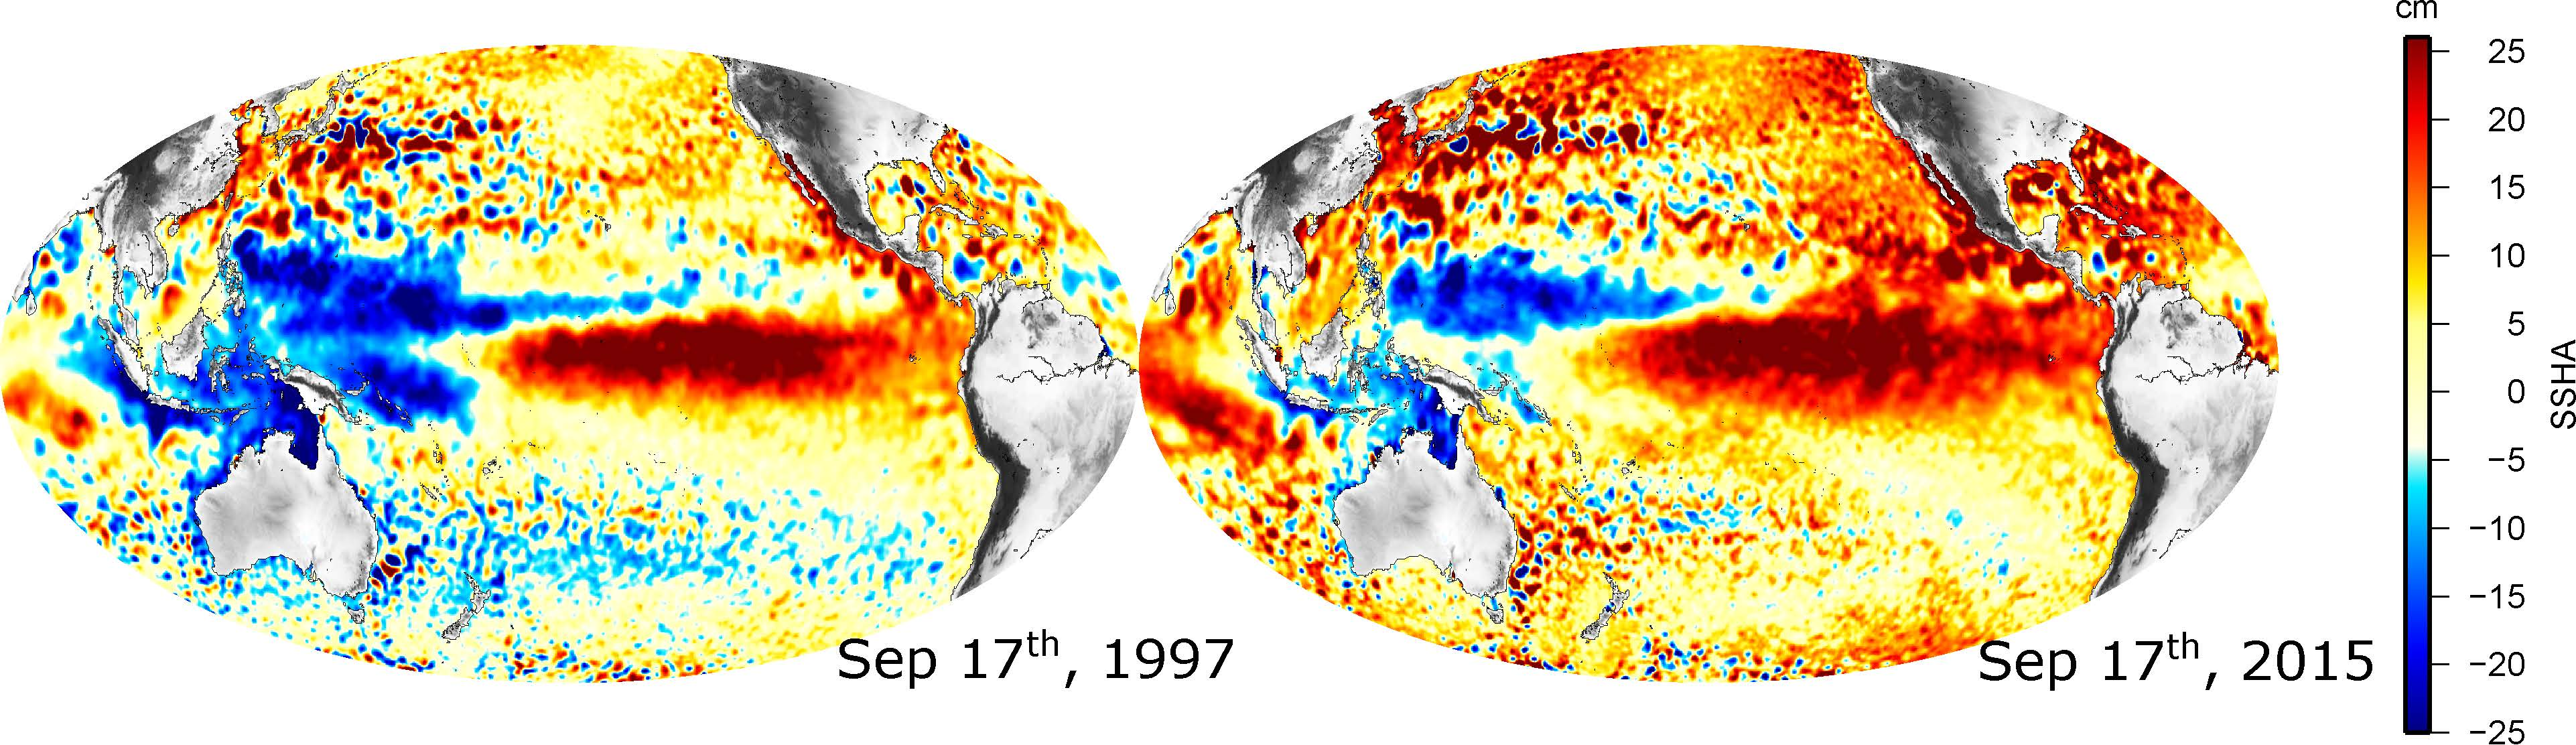 Comparison of sea surface height anomalies during the 1997-1998 and 2015-2016 El Niño episodes in the Pacific Ocean. El Niño events impact weather patterns globally scale and may facilitate the transport of waterborne disease from the equatorial Pacific into the Americas.